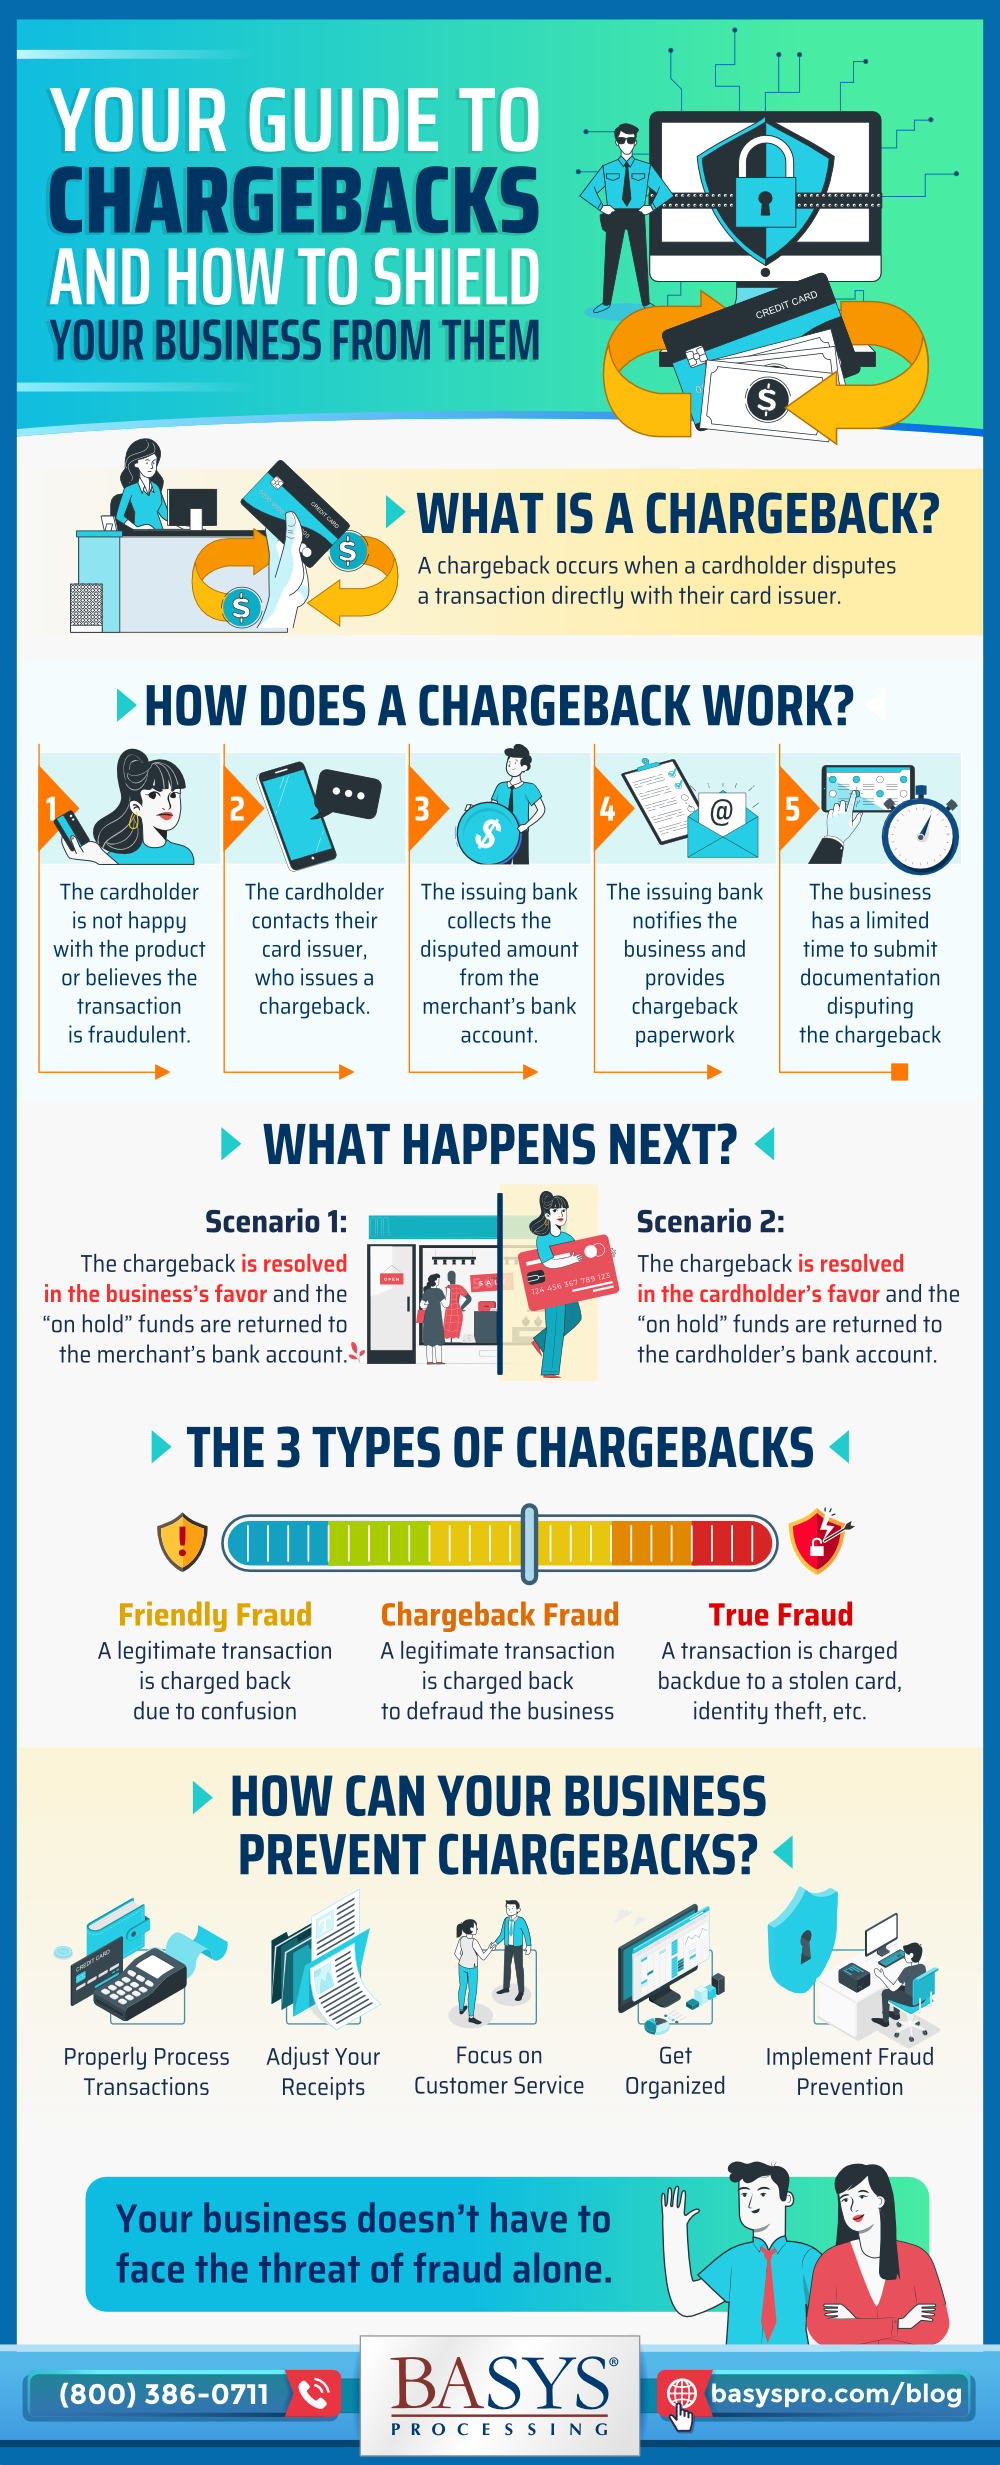 Your Guide to Chargebacks